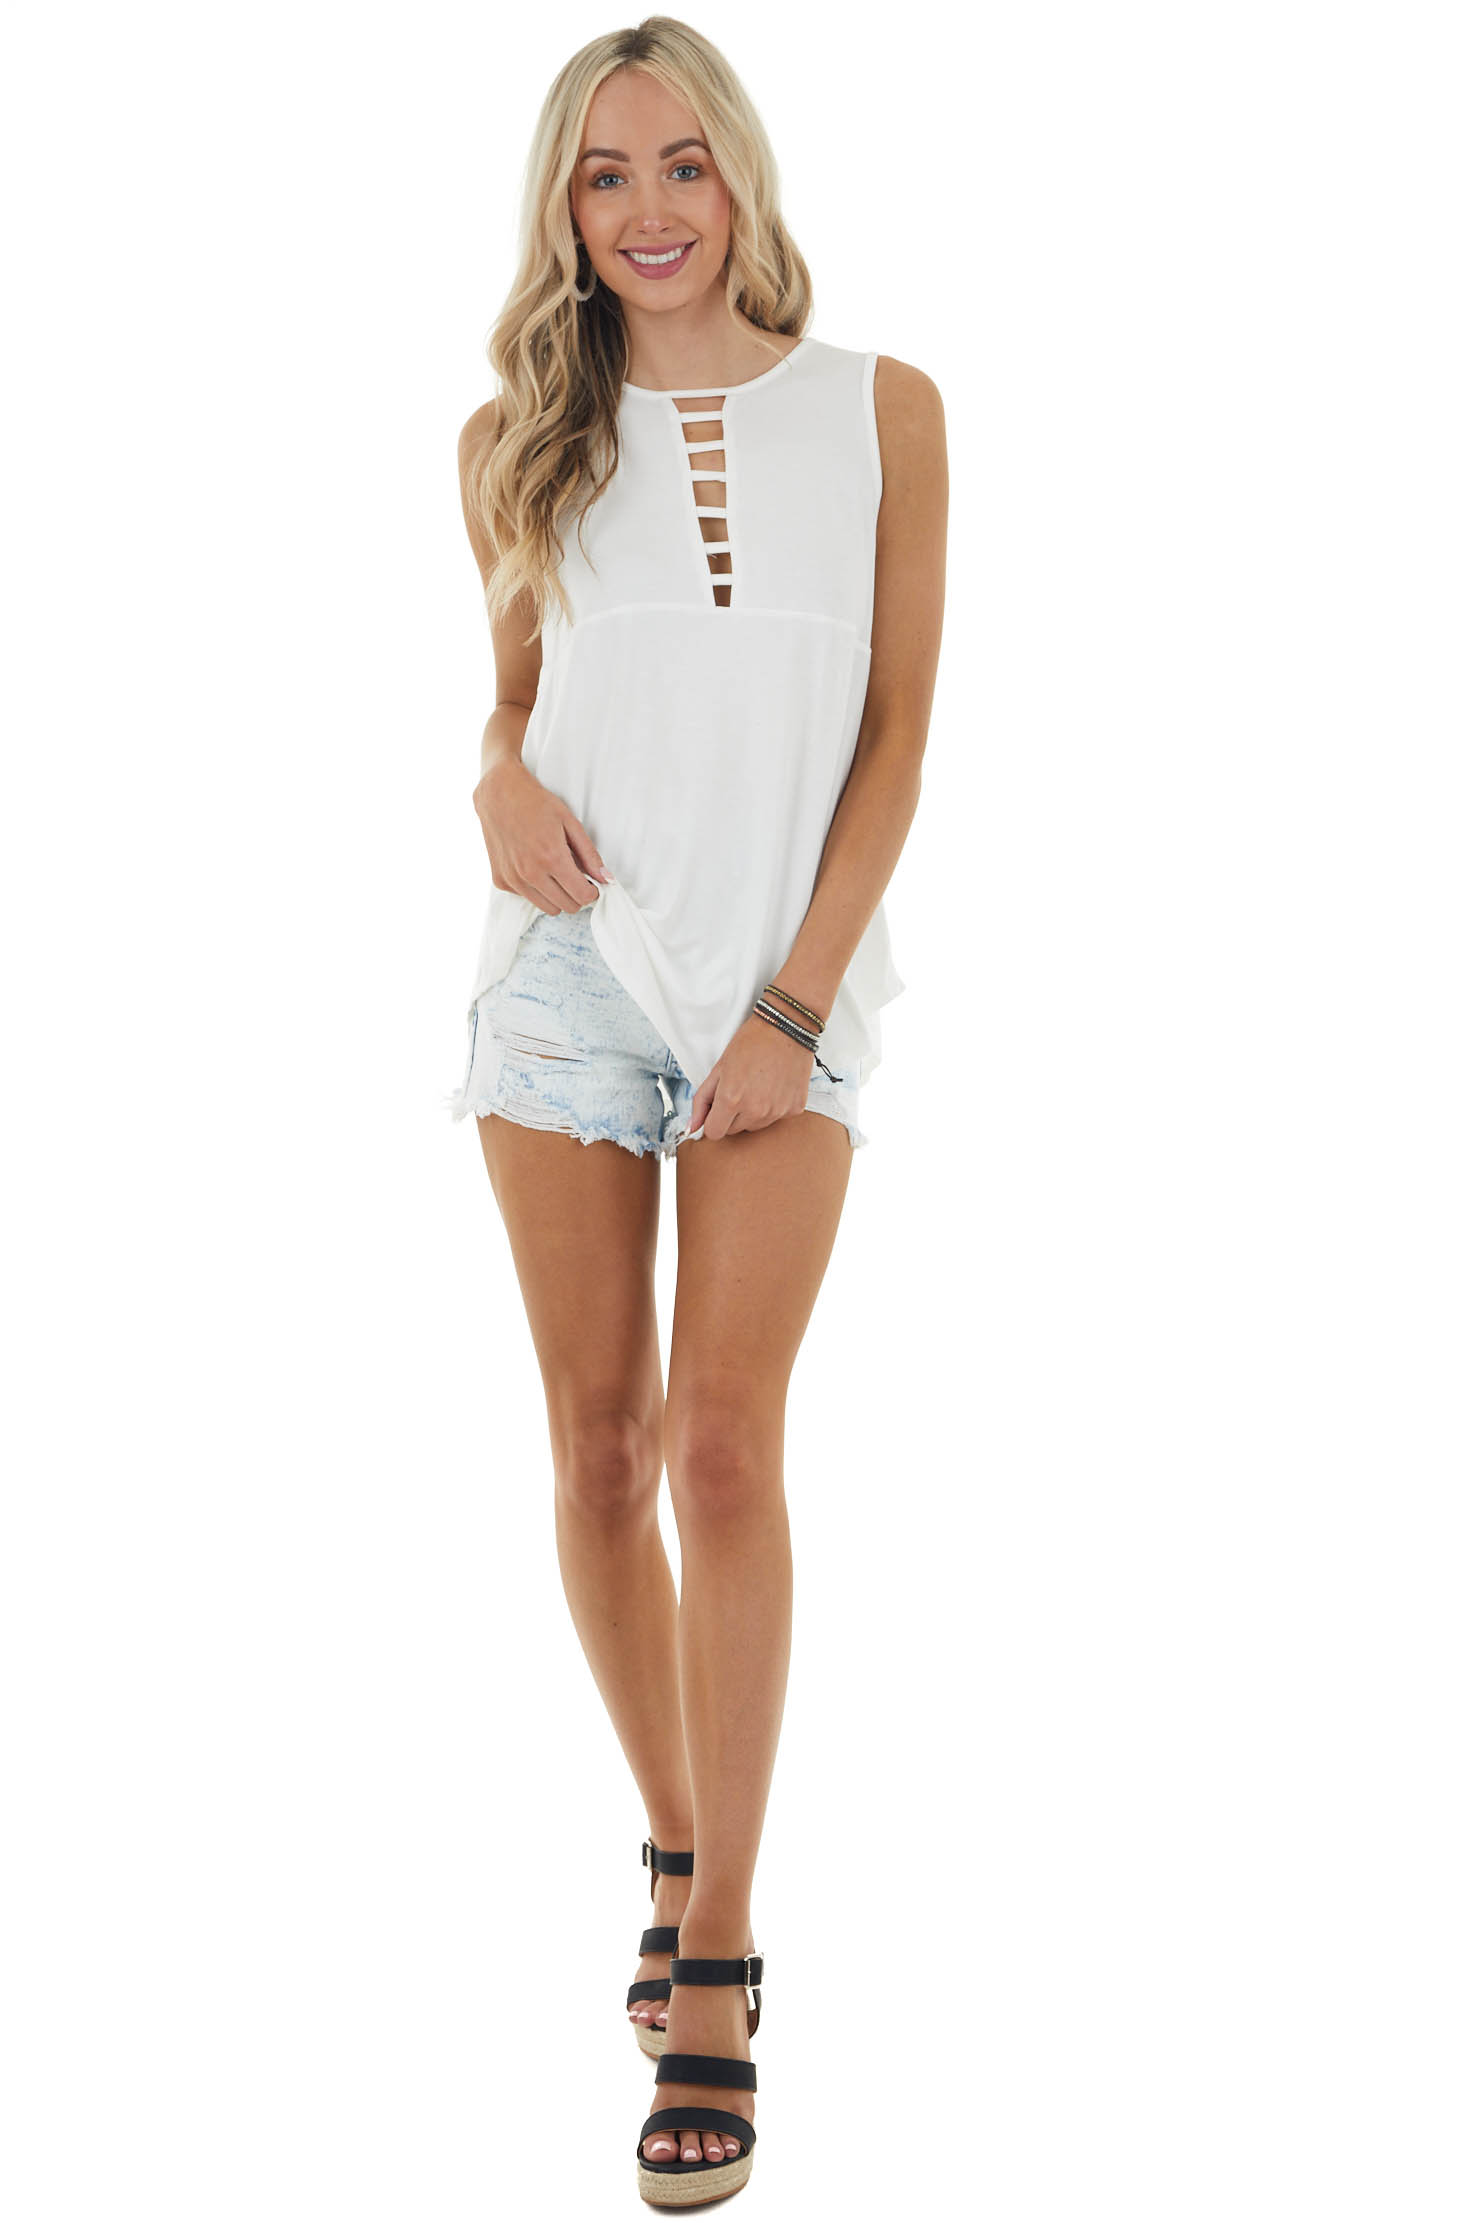 Ivory Sleeveless Knit Tank Top with Ladder Neck Detail